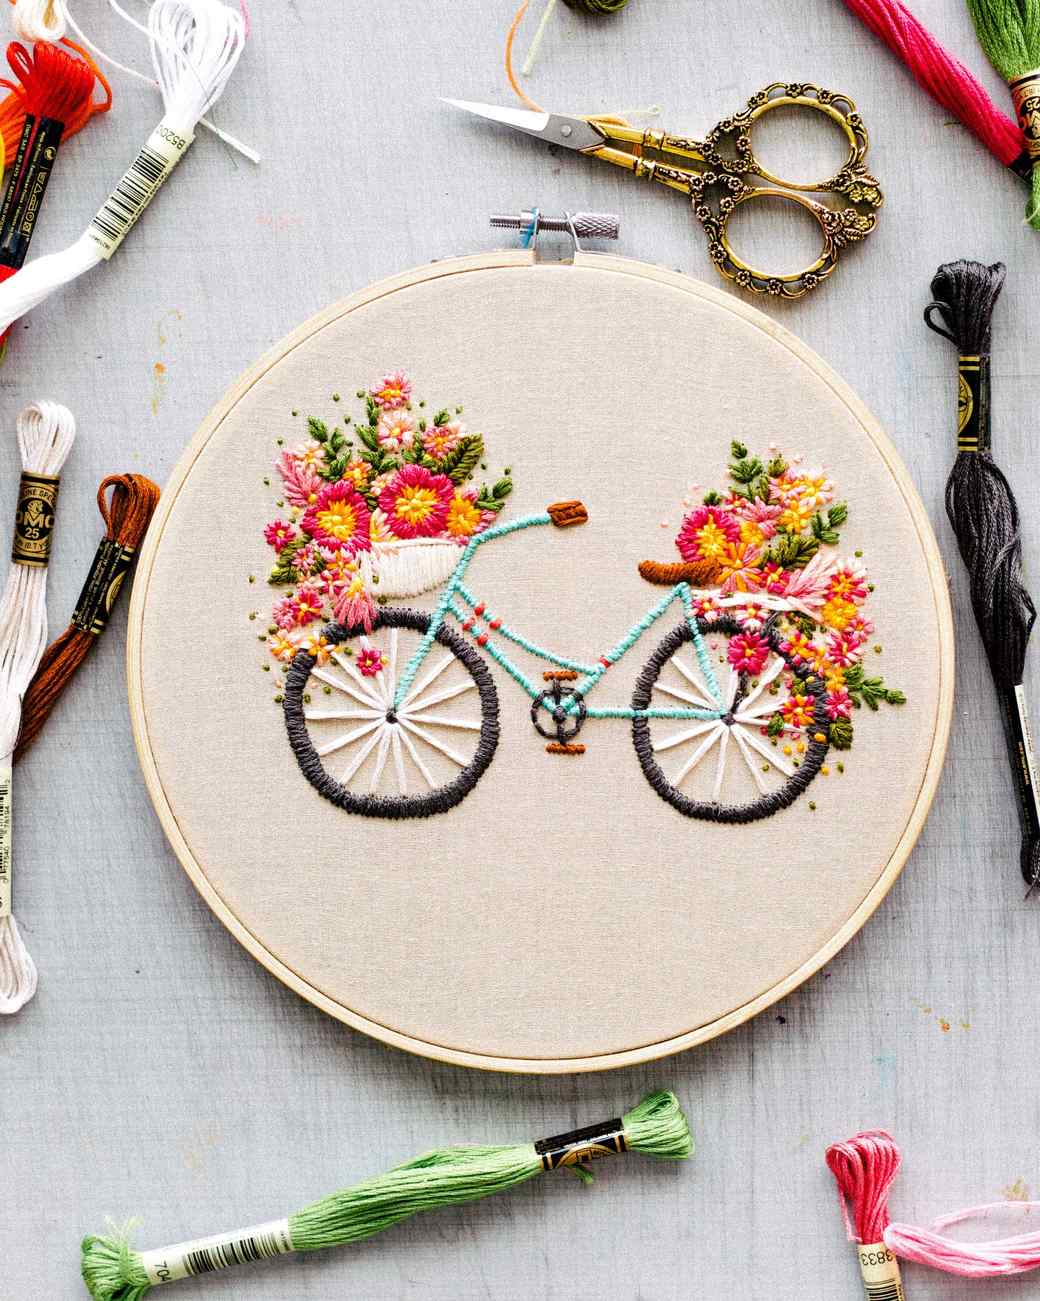 Embroidered bicycle with basket of flowers martha stewart for Pictures of designs